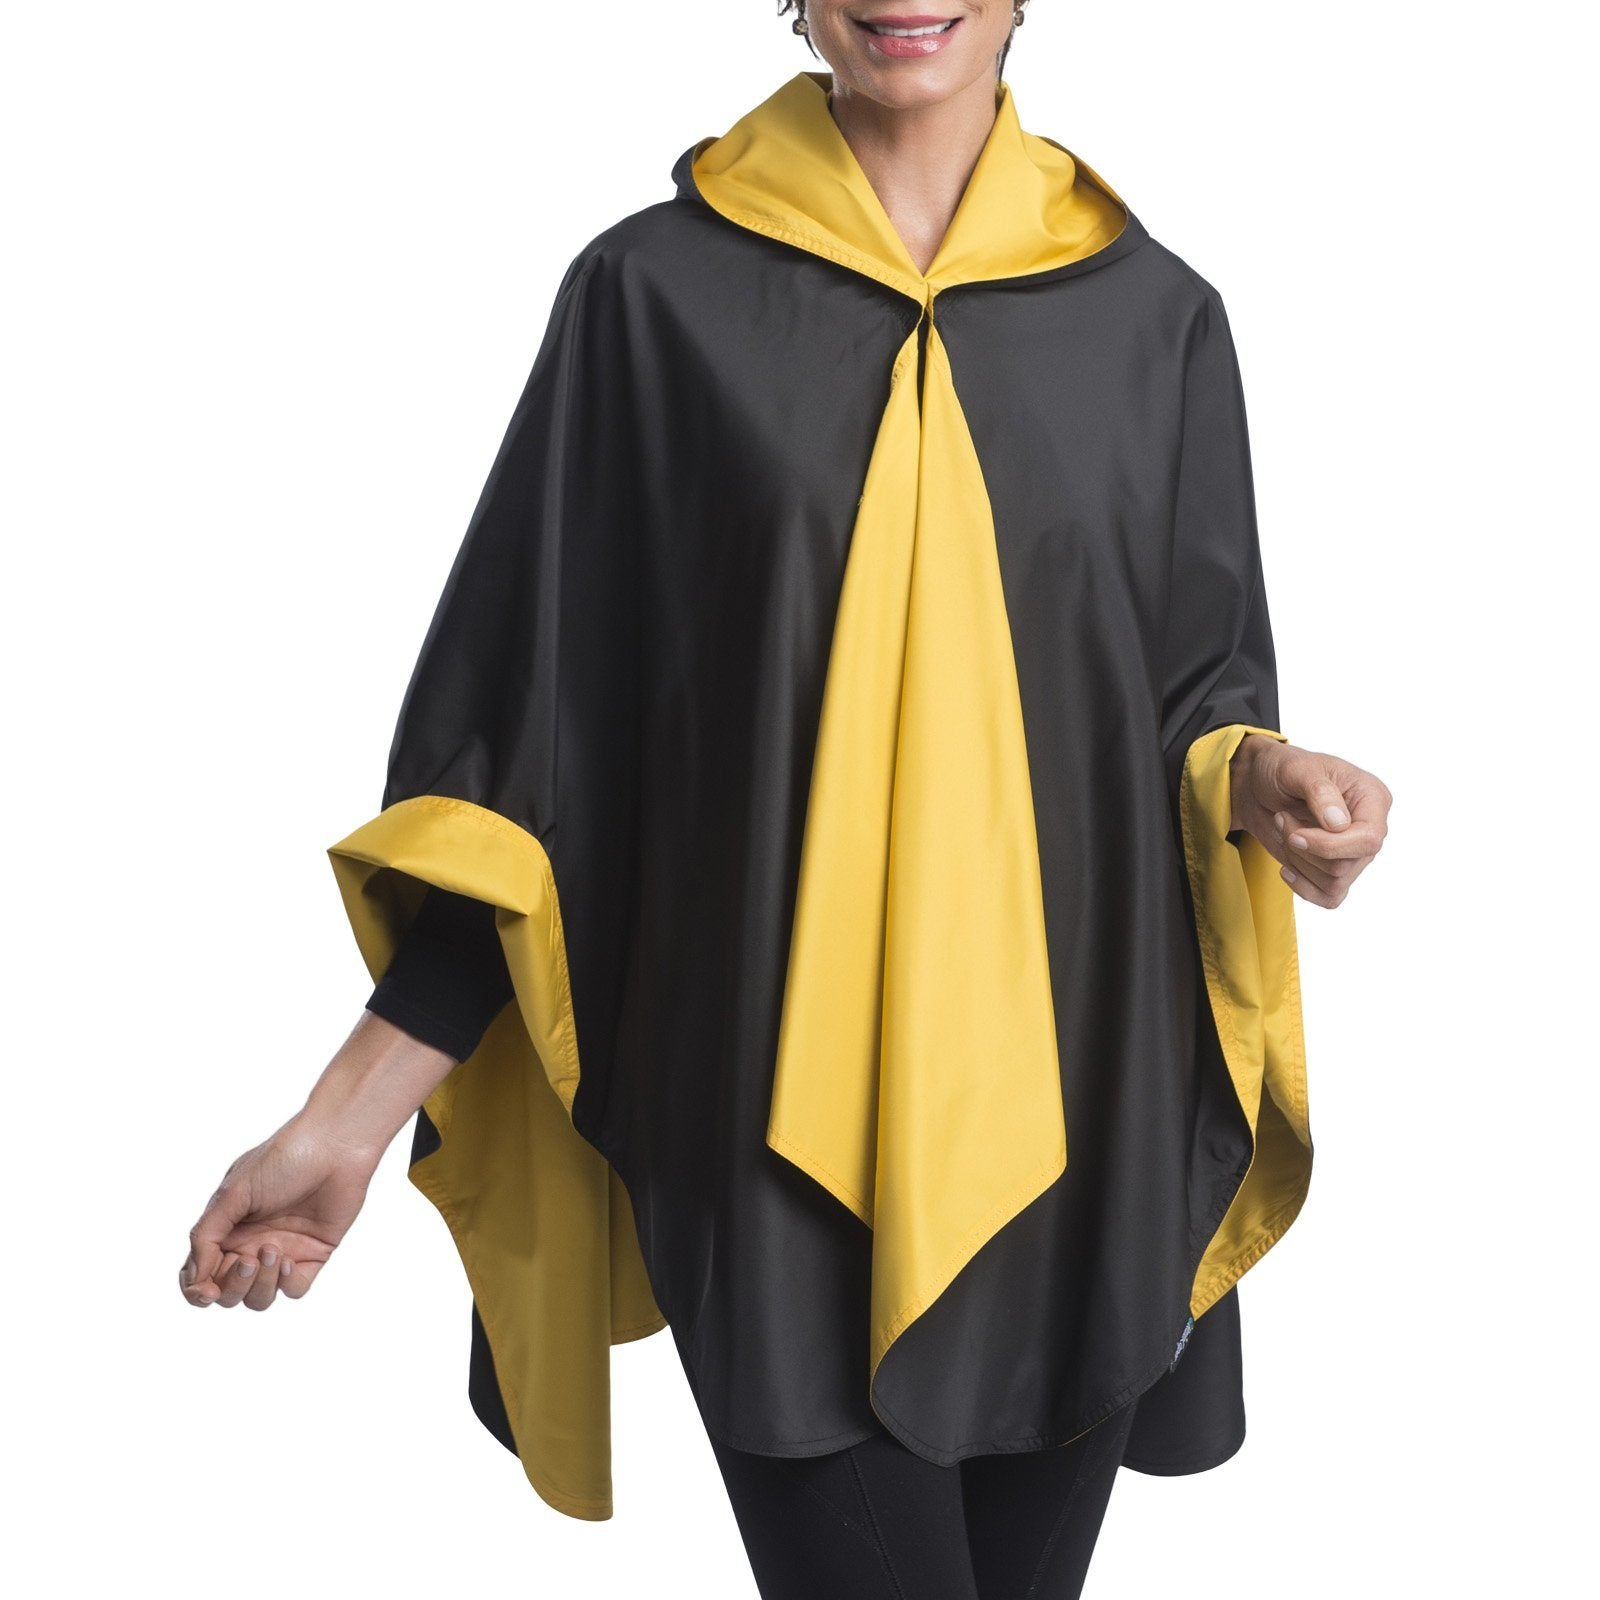 Woman wearing a Black & Gold Wind & Rainproof Cape with the Black side out, revealing the Gold print at the lapels,neckline and cuffs